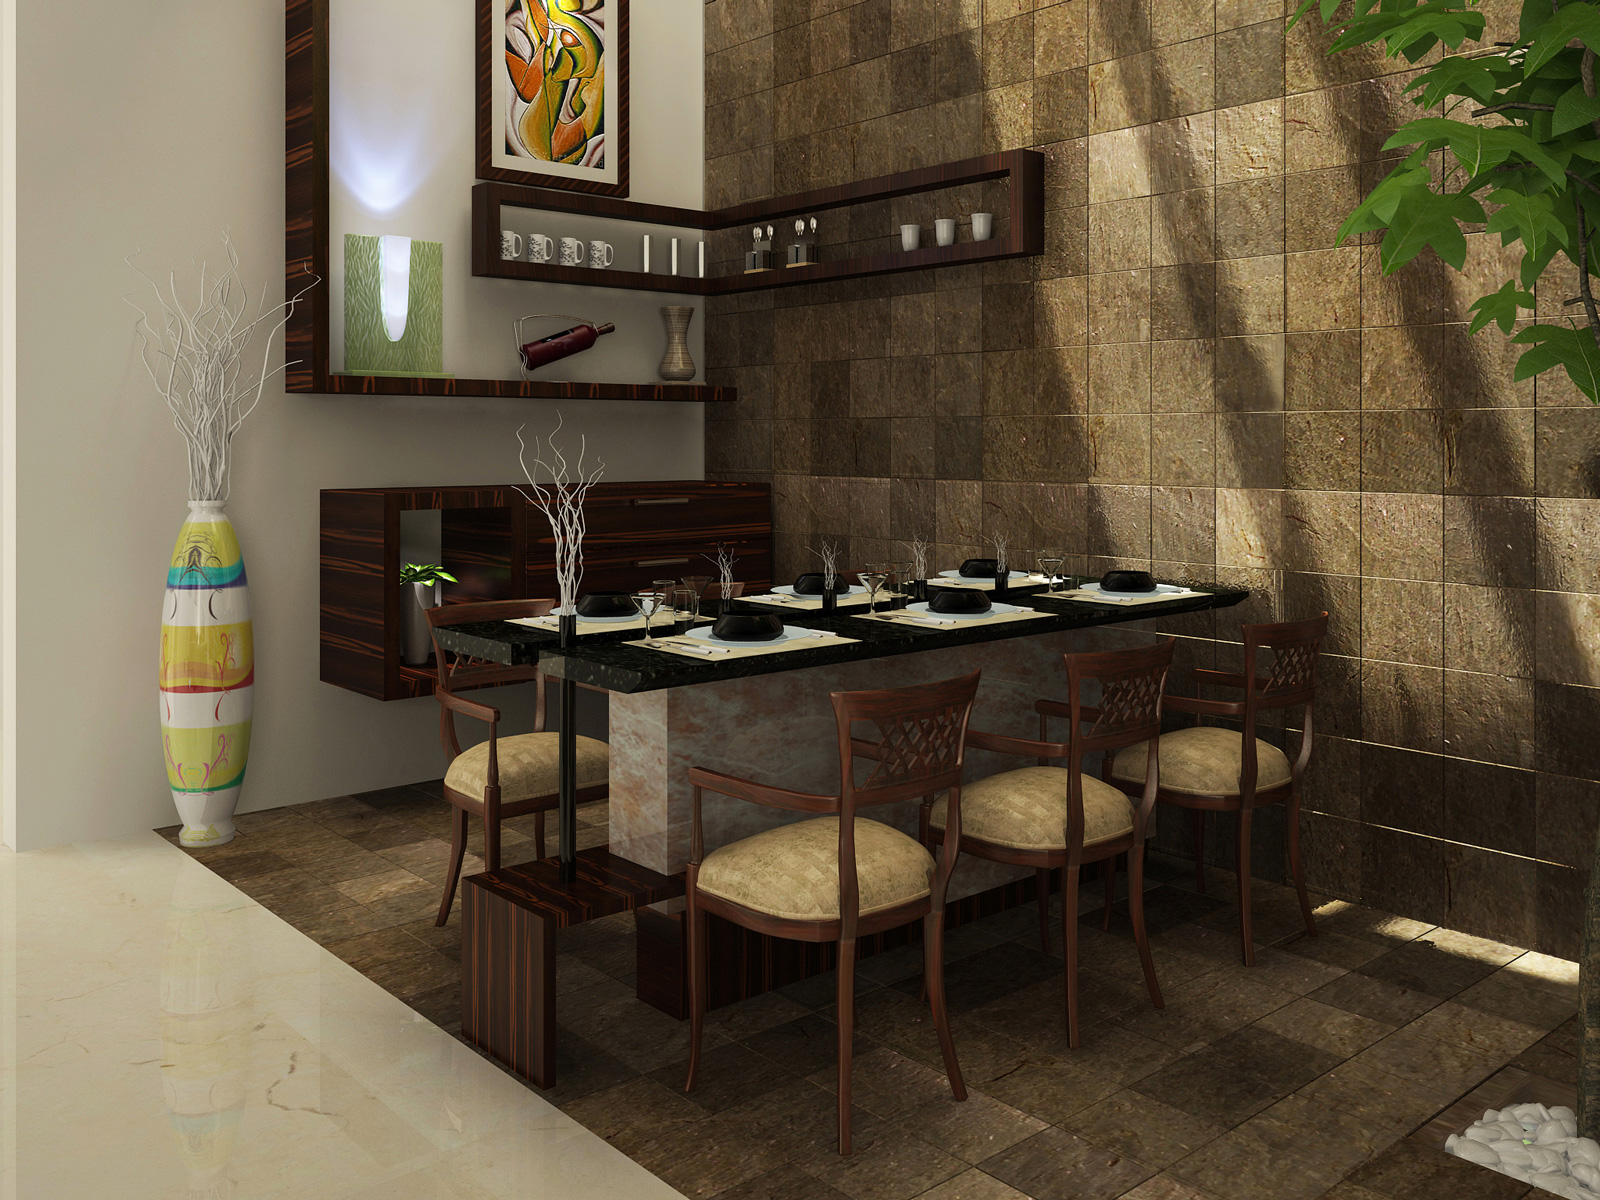 Kerala dining room design style photos home interior in india for Kitchen dining hall design